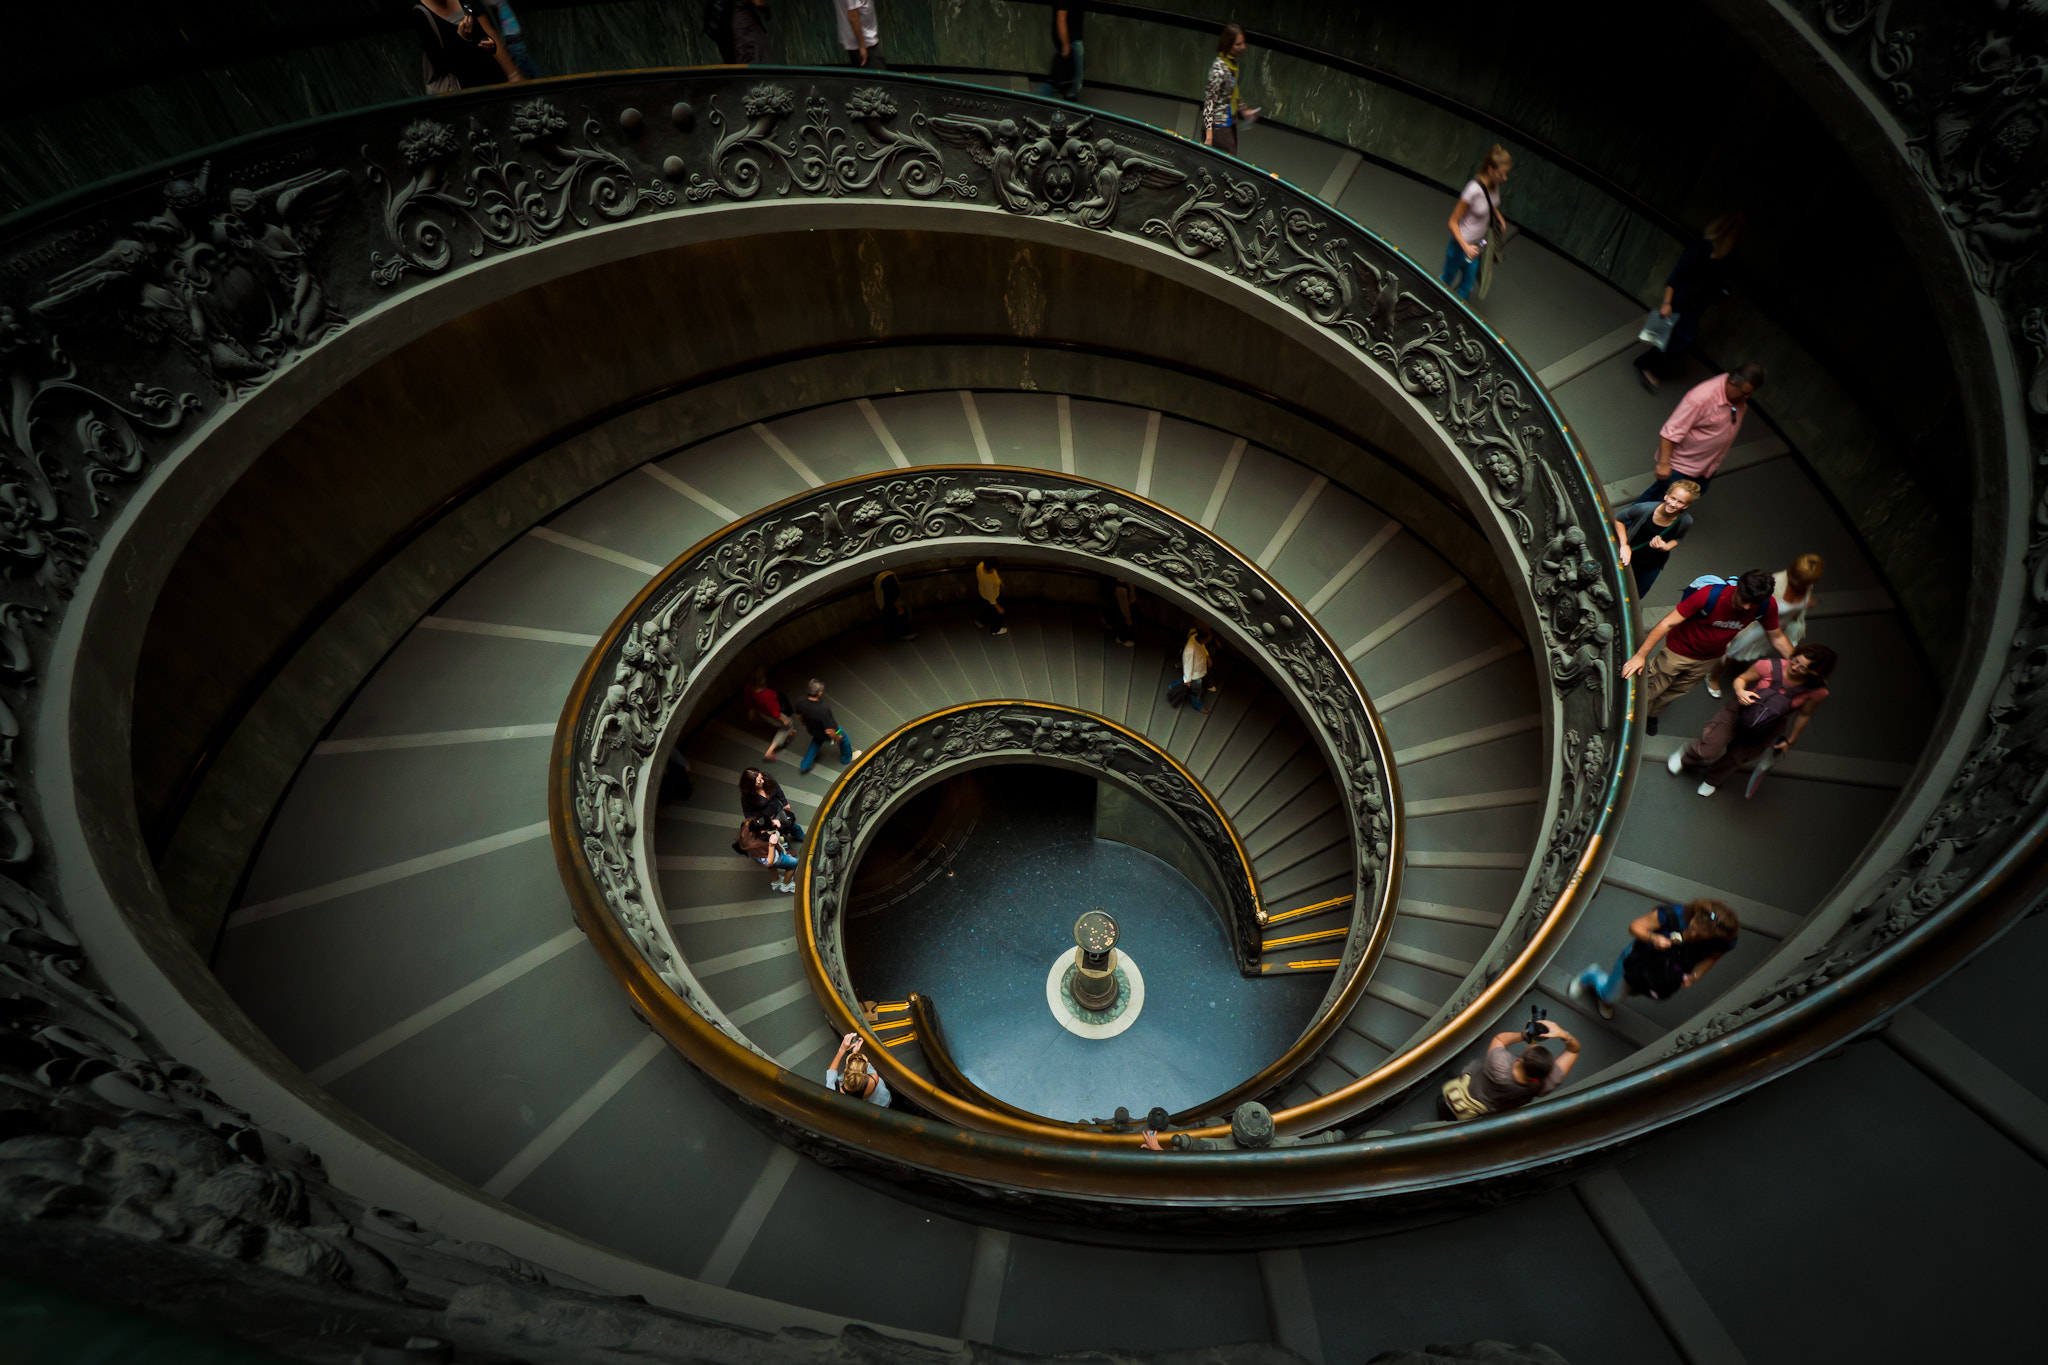 Photograph Stairs by Raymond van der Hoogt on 500px